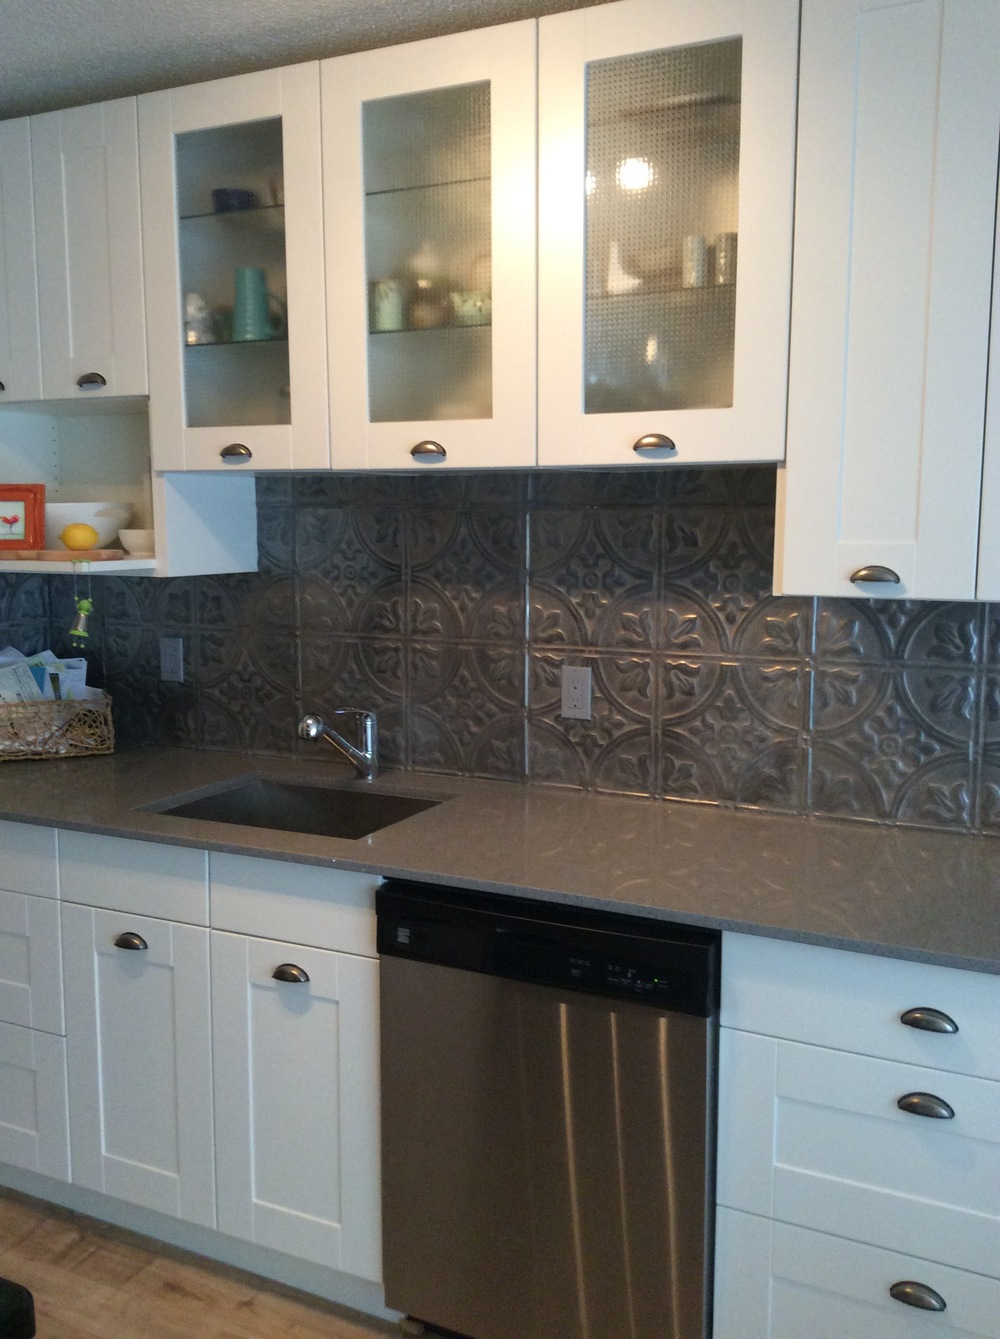 Ikea kitchen, quartz countertop, tin tile backsplash.